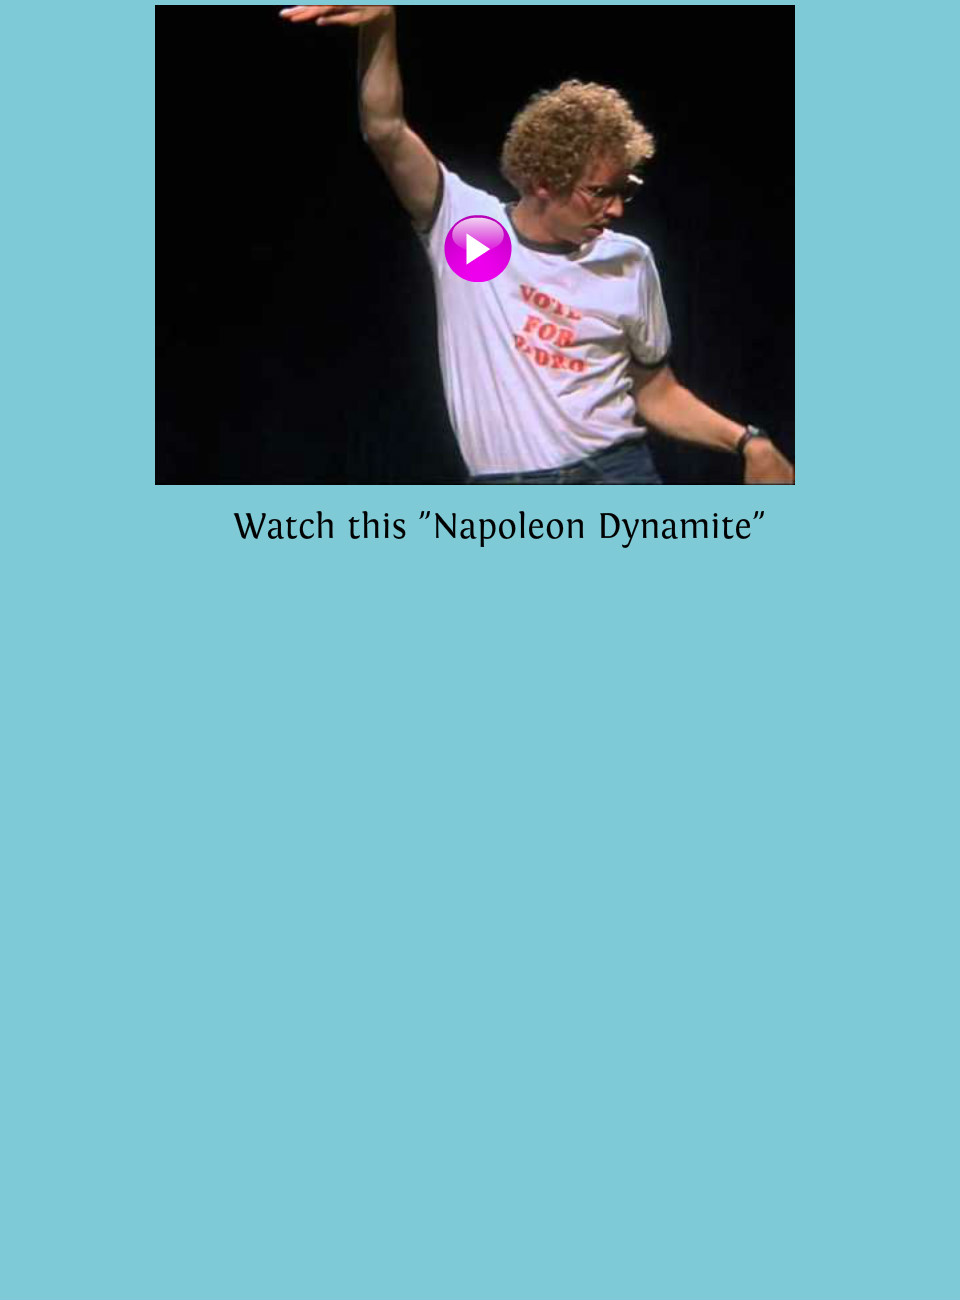 19 best Napoleon Dynamite images on Pinterest | Funny ... |Napoleon Freaking Dynamite Quotes Sweet